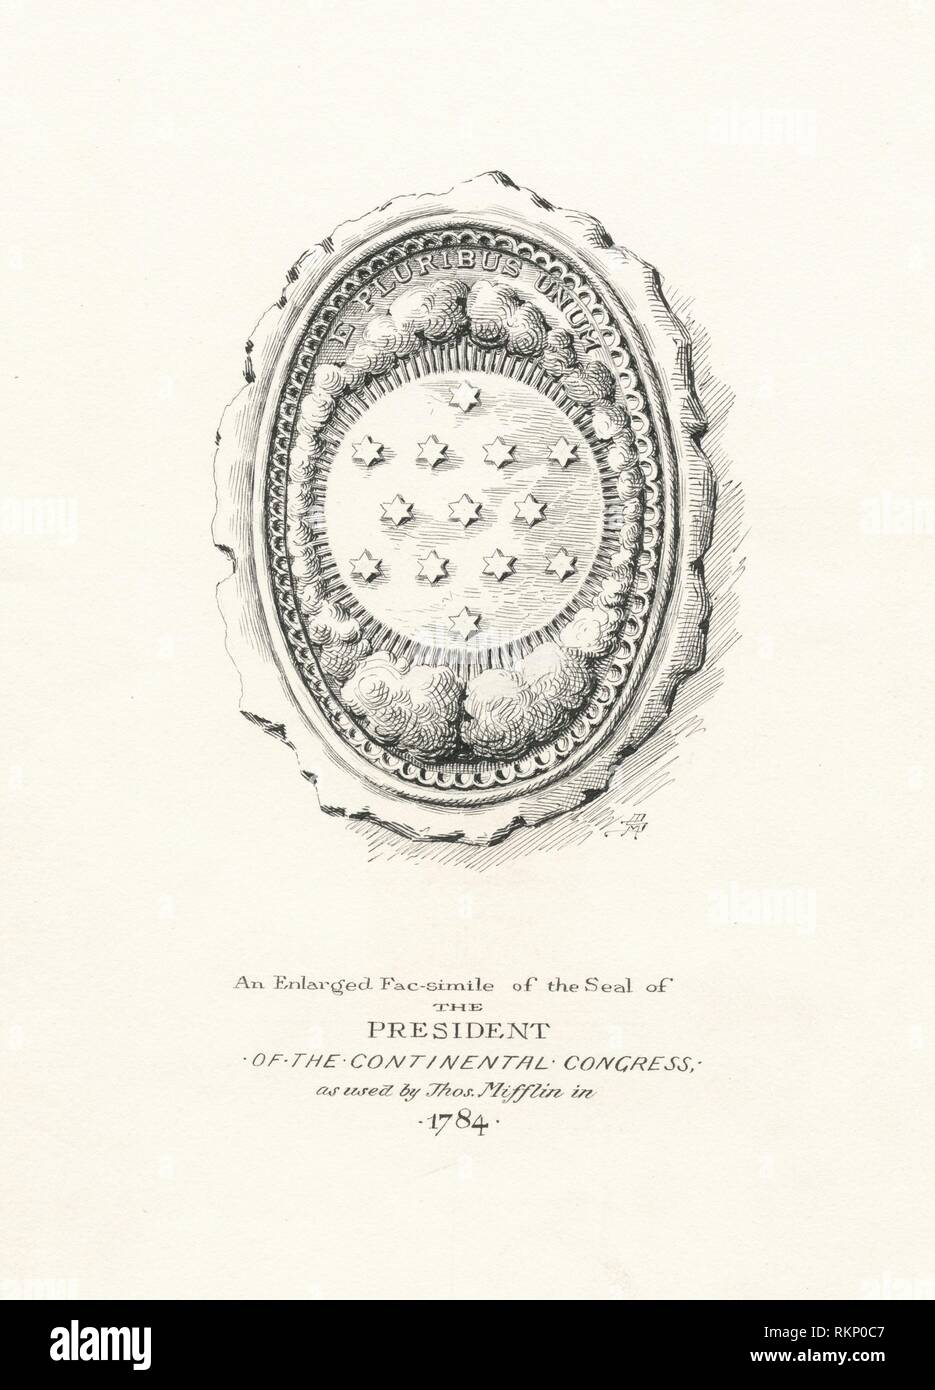 An enlarged fac-simile of the seal of the president of the Continental Congress as used by Thomas Mifflin in 1784. Stauffer, David McNeely - Stock Image